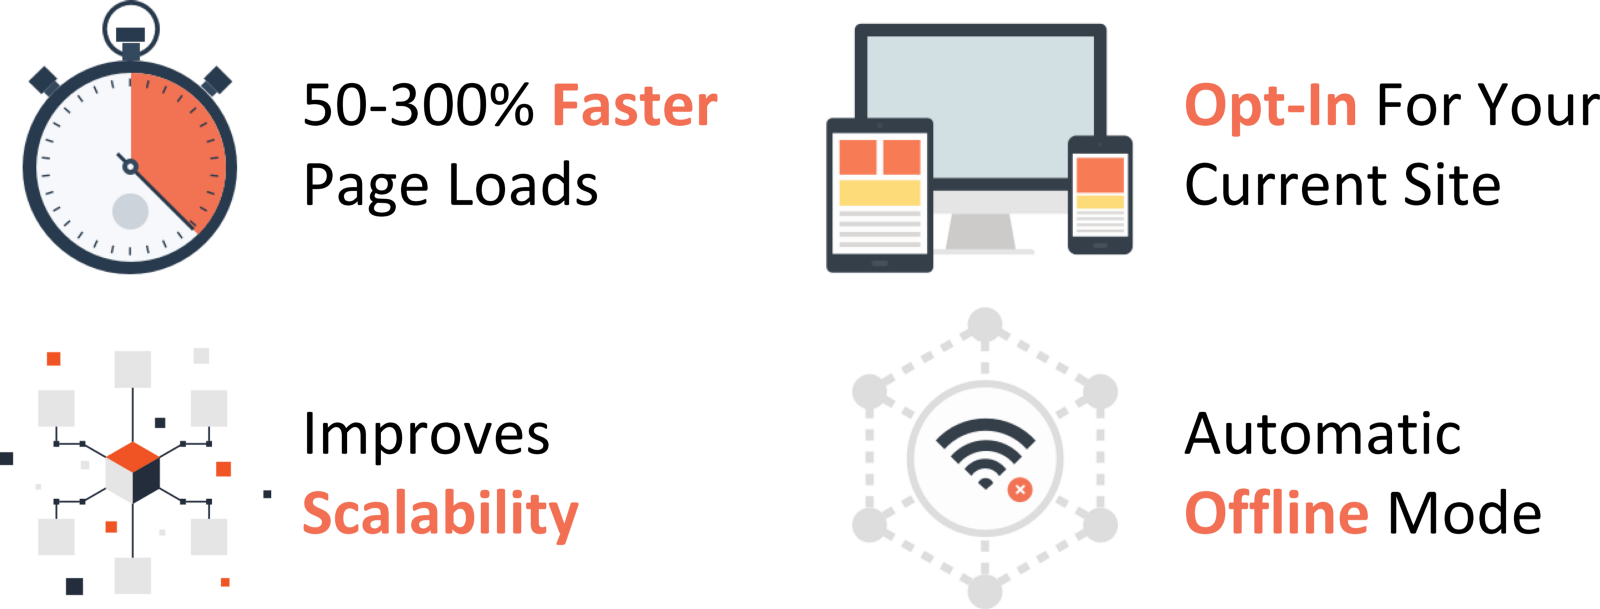 Rethinking Web Performance With Service Workers Baqend Blog How Improving Page Load Speed Can Increase Your Website Traffic And User Experience In Summary We Built Kit To Provide The Following Features